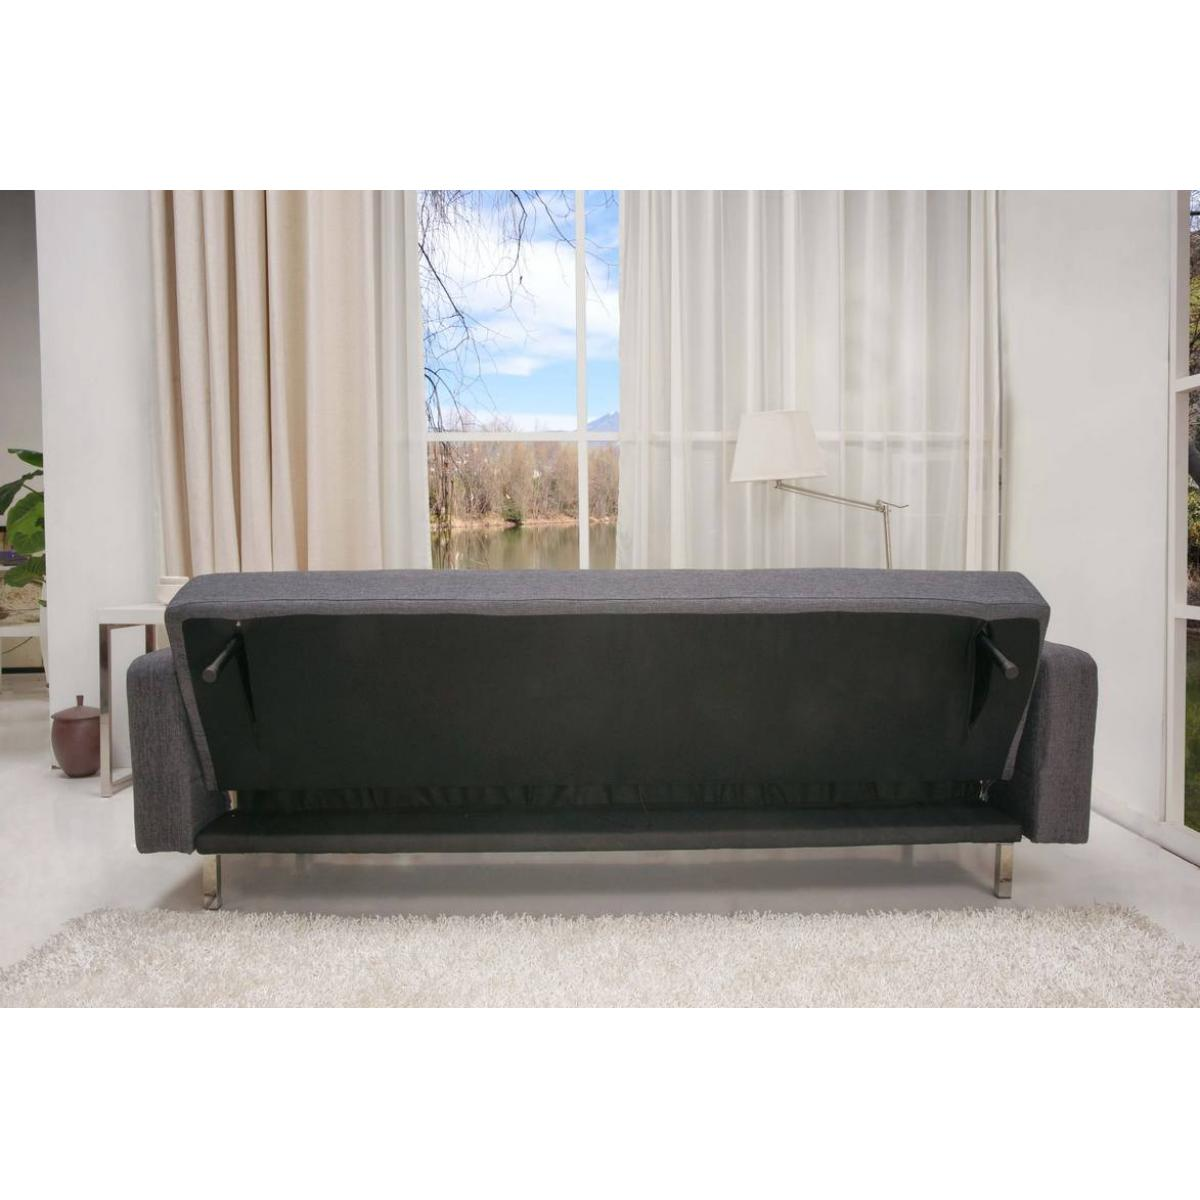 schlafcouch schlafsofa couch sofa schlaffunktion sofagarnitur stoff grau. Black Bedroom Furniture Sets. Home Design Ideas